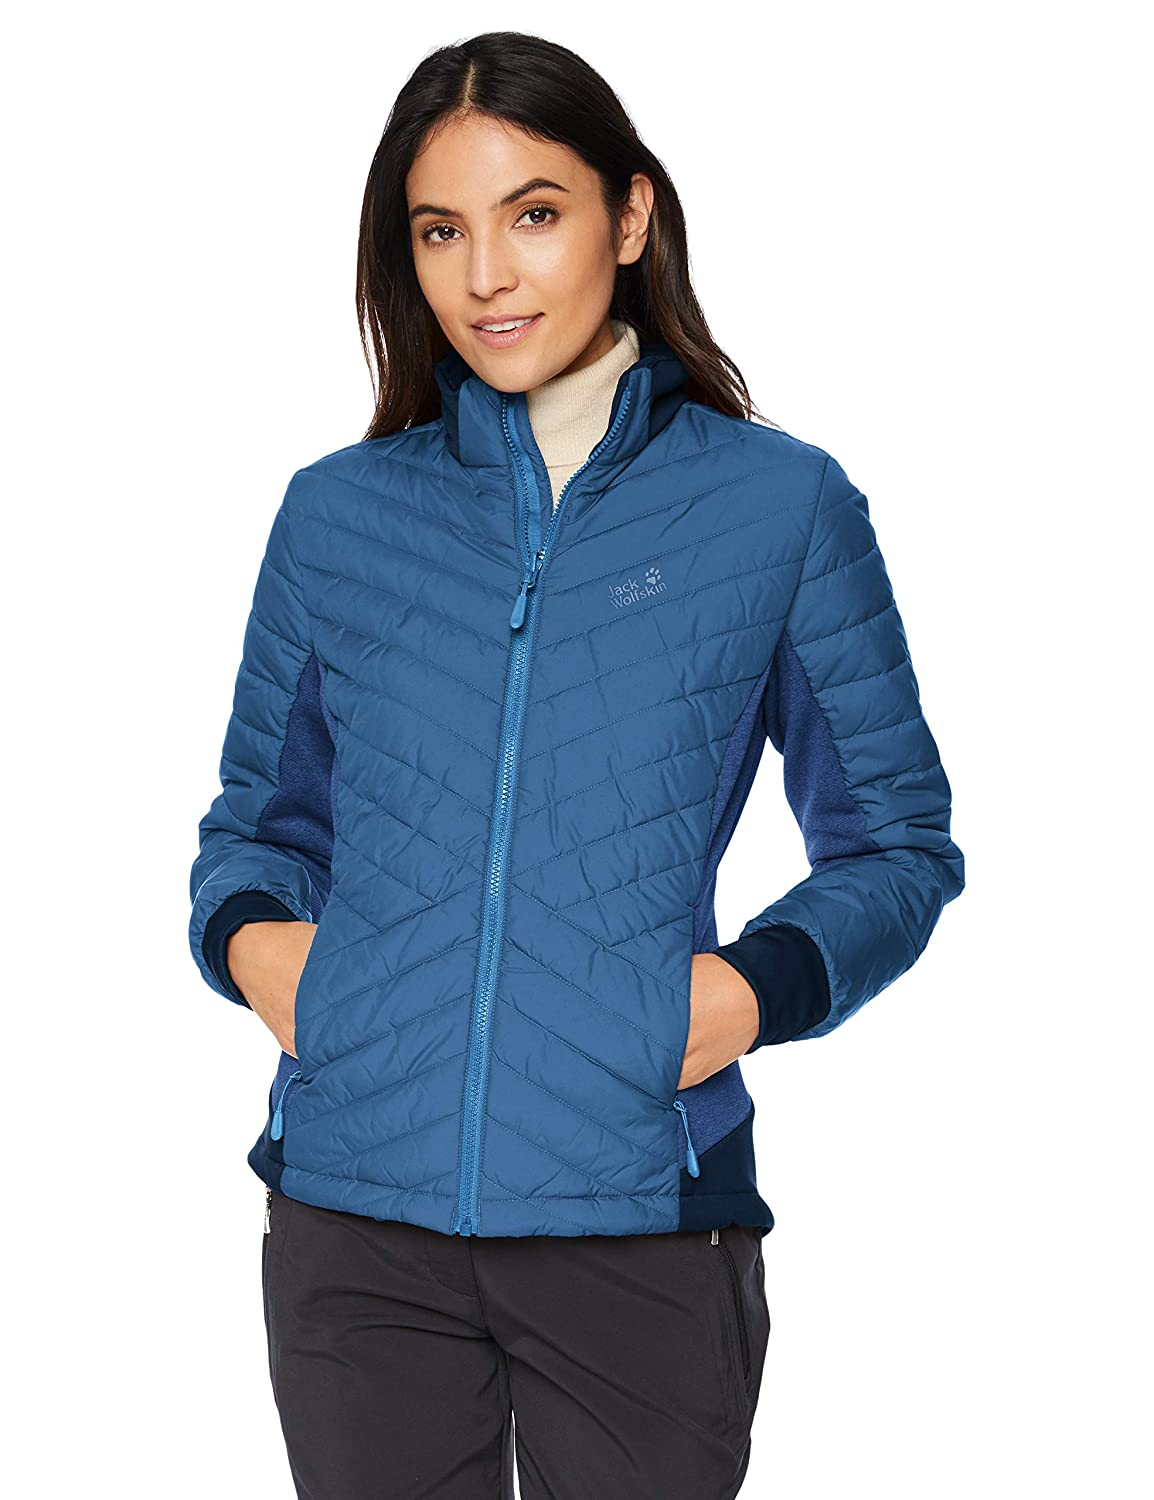 7daf6a0b21 Jack Wolfskin Women's Aurora Sky 3-IN-1 Waterproof Hybrid Down-Fiber  Insulated Jacket: Amazon.co.uk: Sports & Outdoors